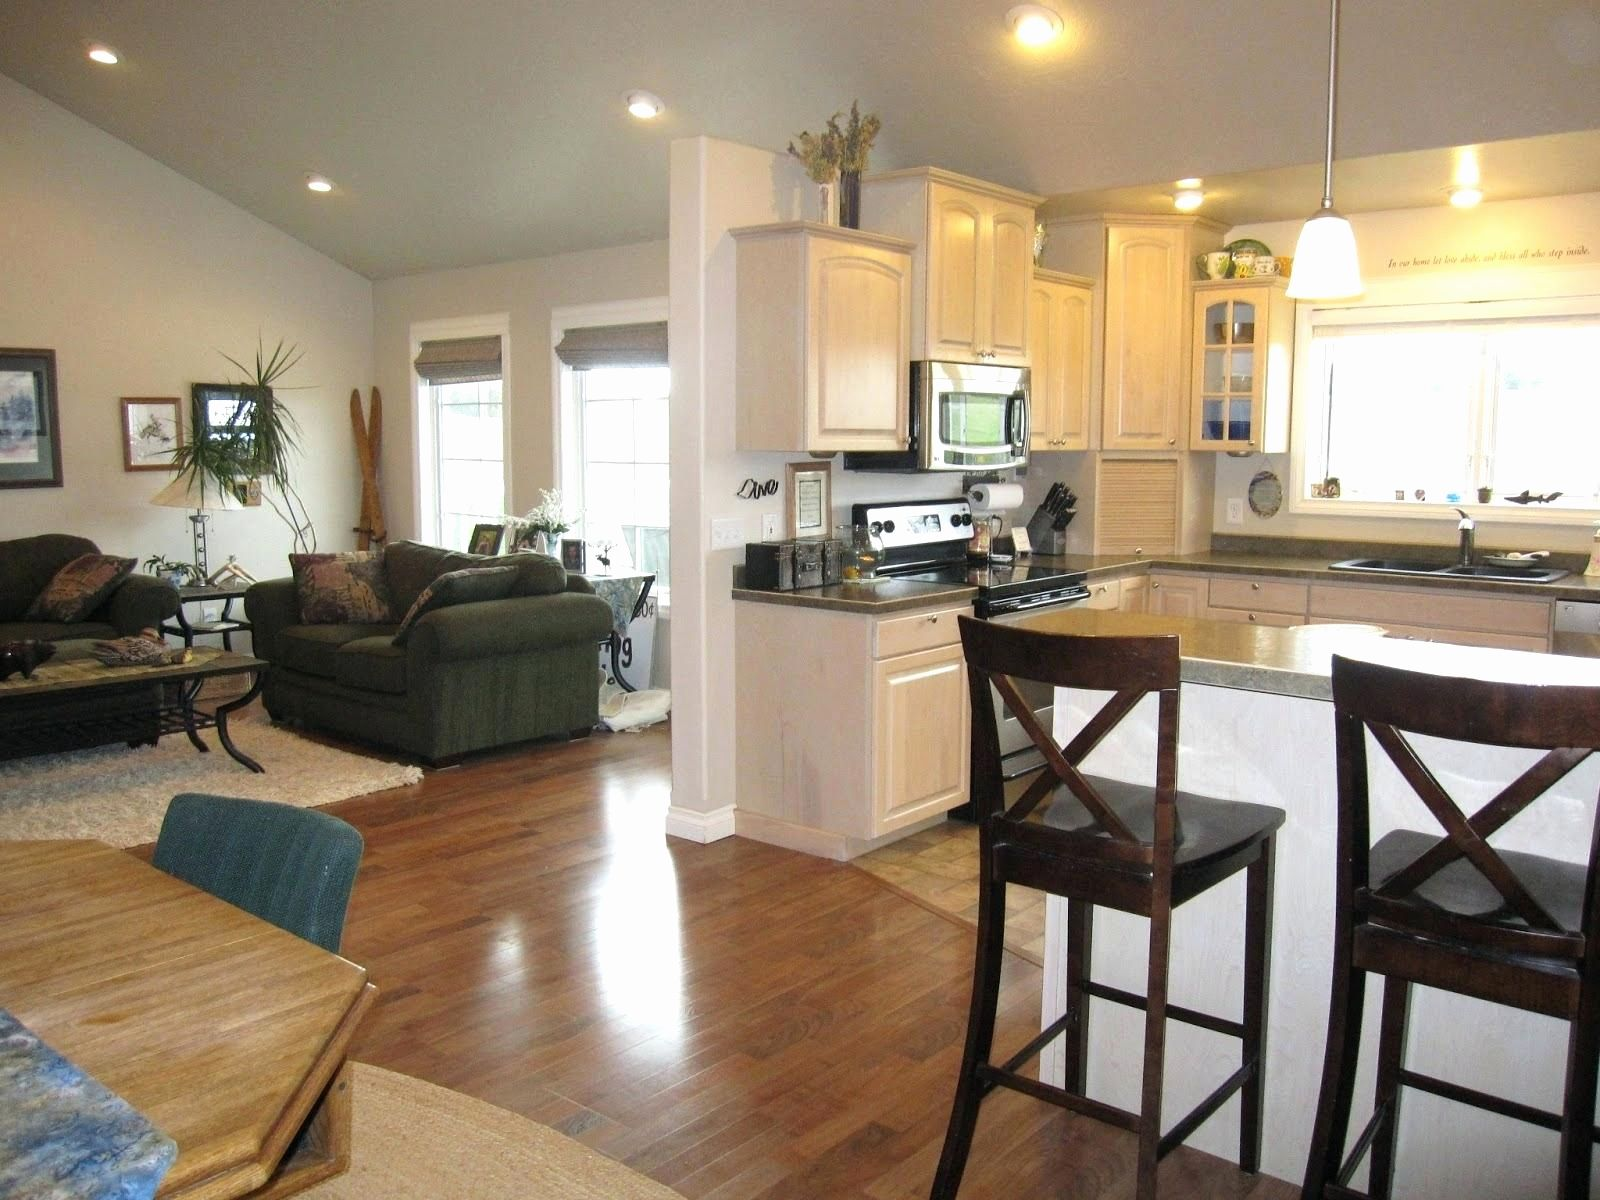 Image Result For Open Plan Kitchen Diner Living Room Gallery Open Concept Kitchen Living Room Open Kitchen And Living Room Kitchen Dining Room Combo Layout